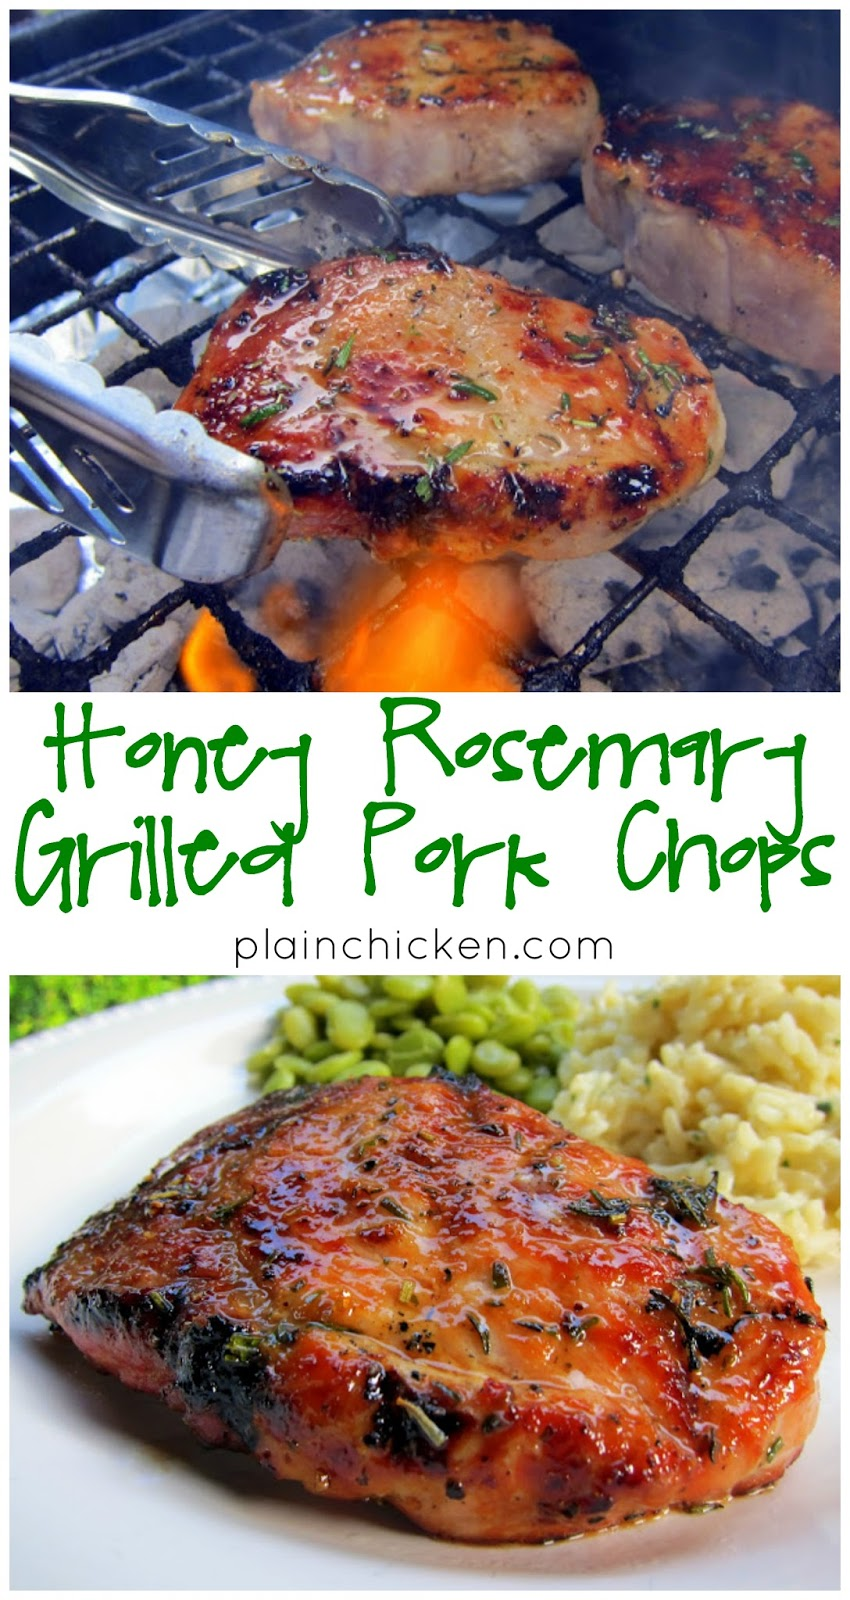 Honey Rosemary Grilled Pork Chops - pork brushed with honey, olive oil, and fresh rosemary. I prepped the meat while the grill heated up.  It only took a few minutes. The pork chops were tender, juicy and packed full of flavor.  The rosemary was so fragrant, and the honey added the perfect touch of sweetness.